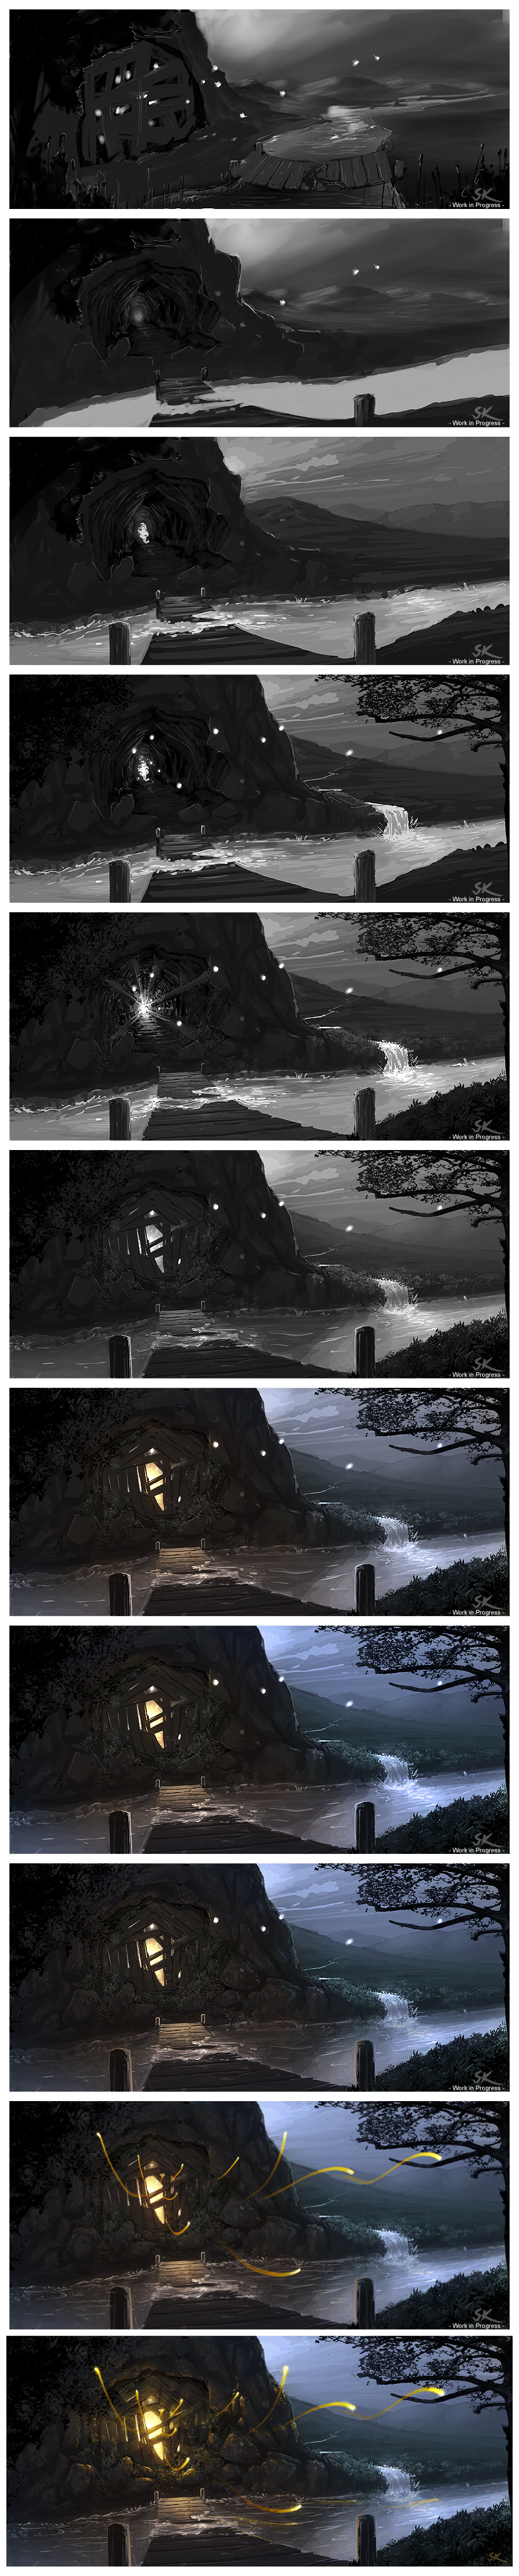 Sylvain's works [UP-Environment_05-P.5] - Page 3 Magical_Mine___process_by_Sylvain_Klein